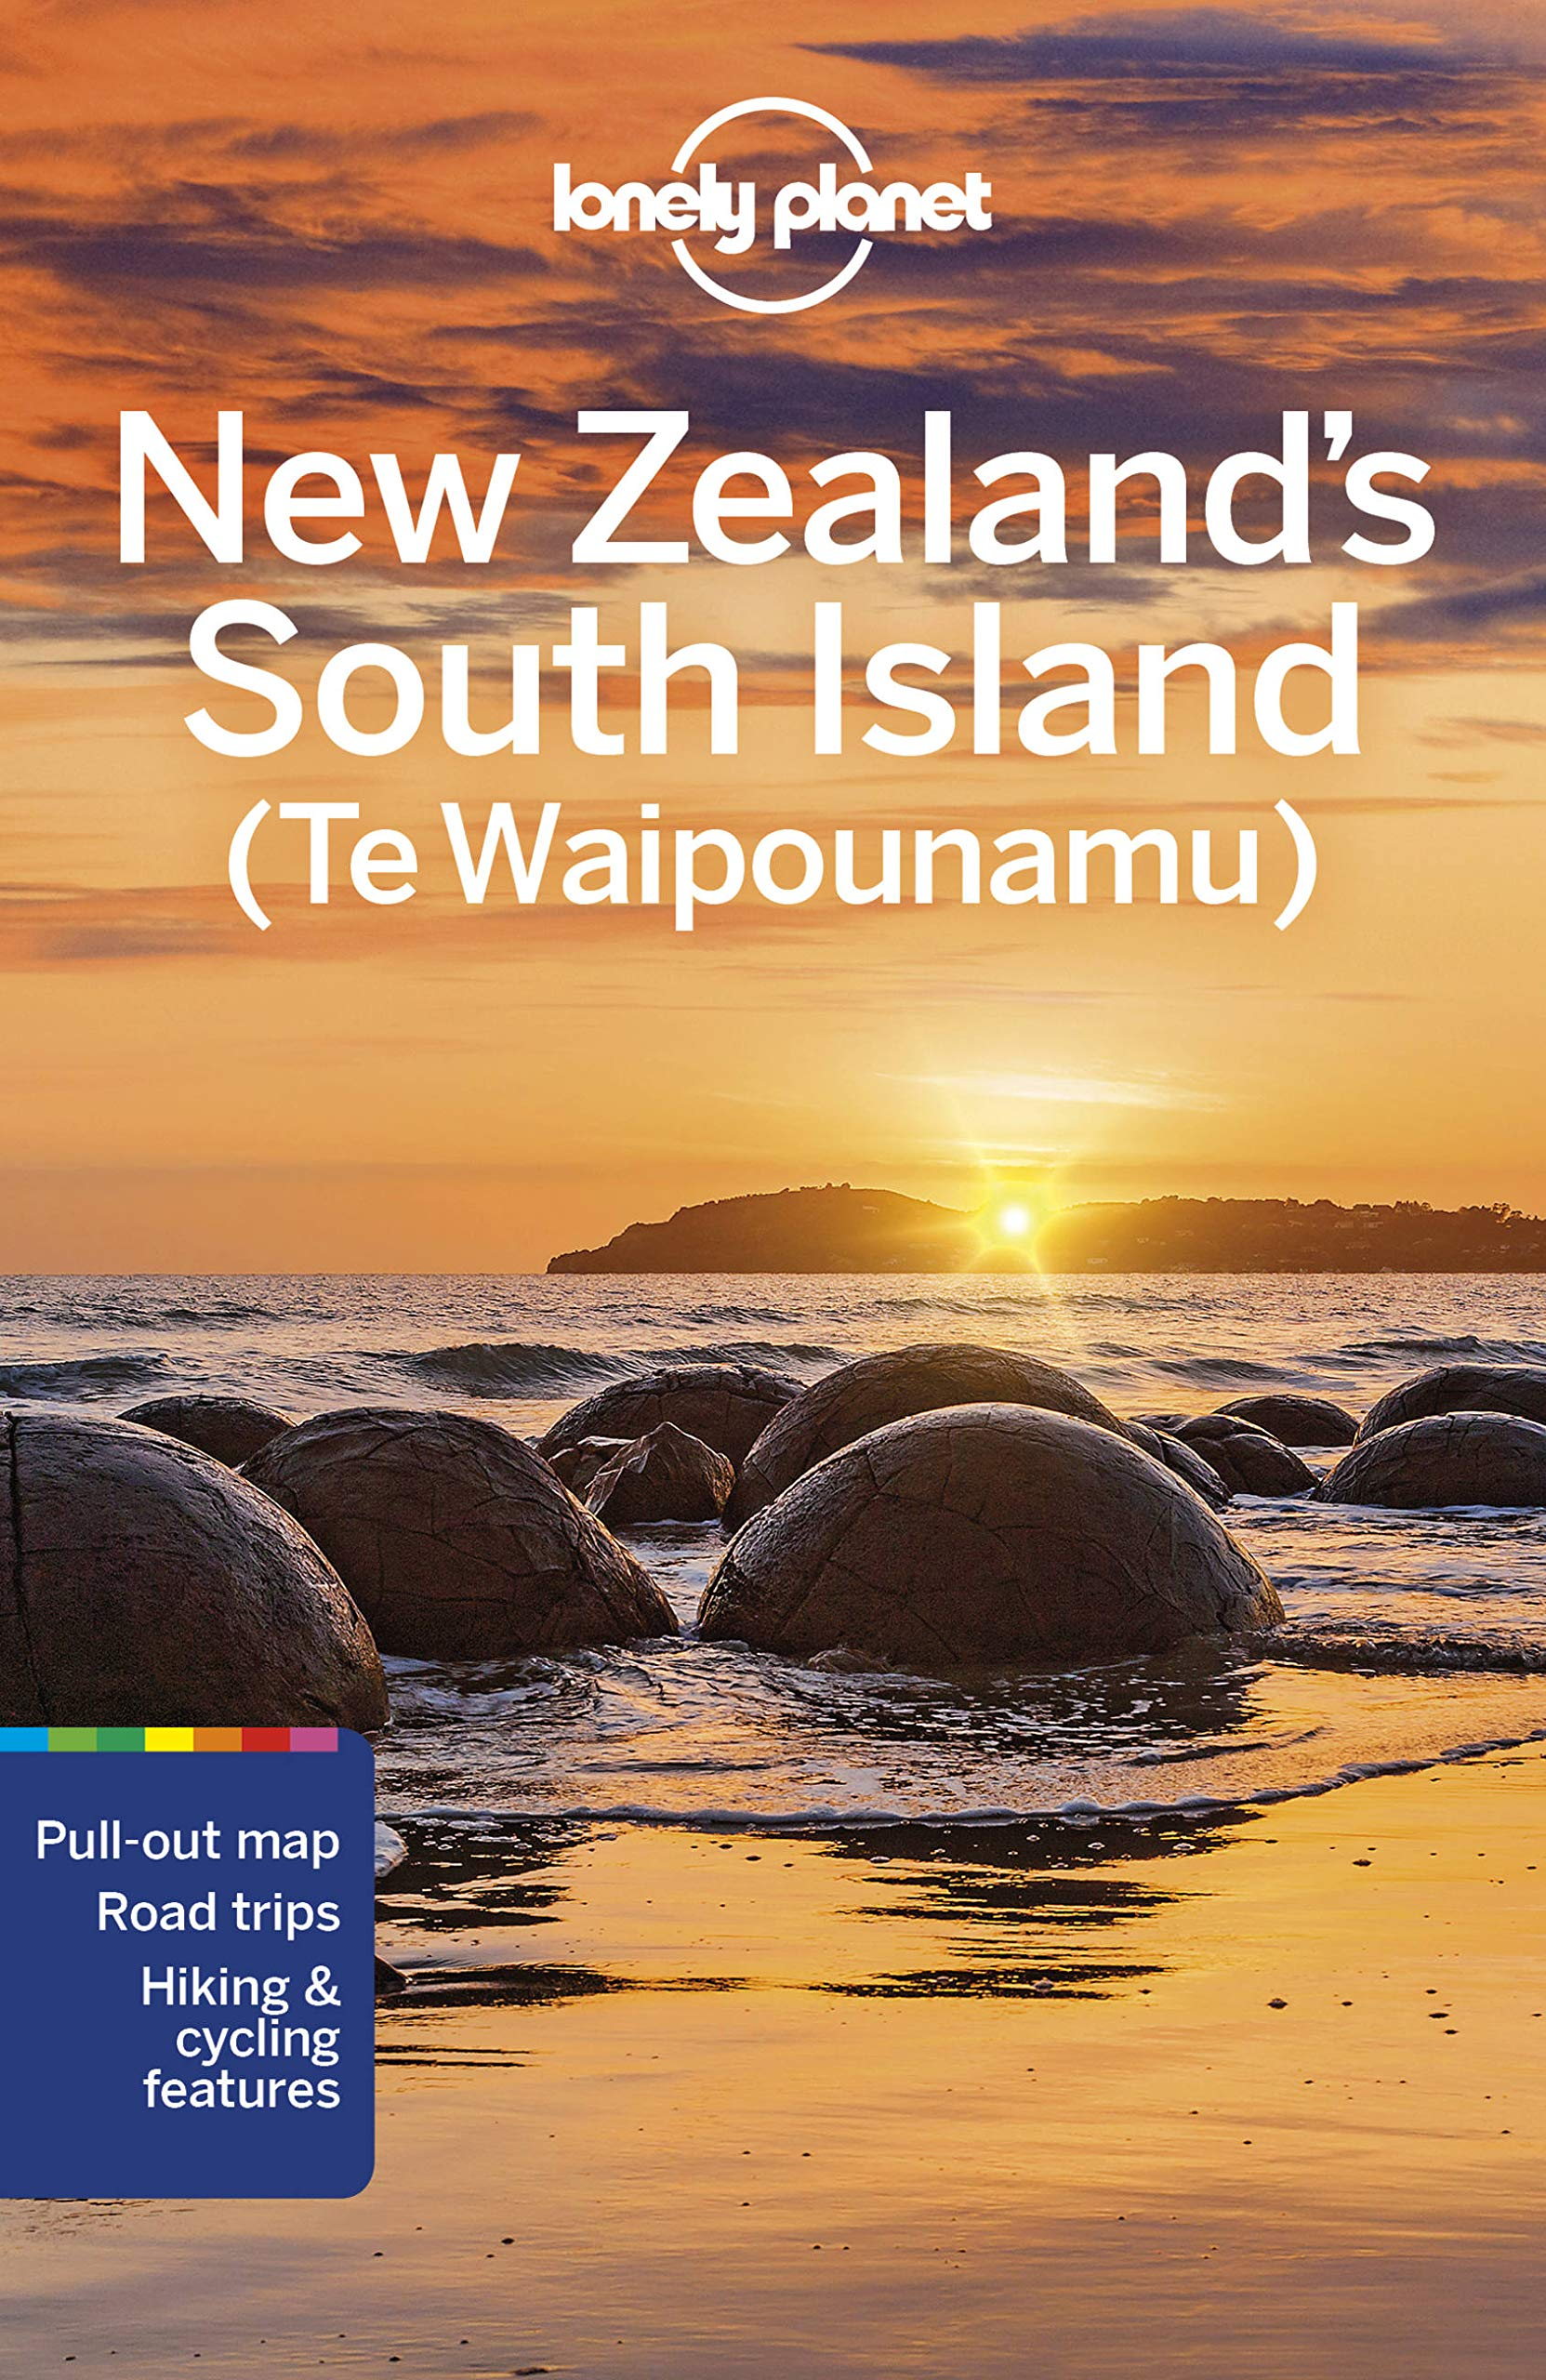 New Zealand's South Island Lonely Planet 5e